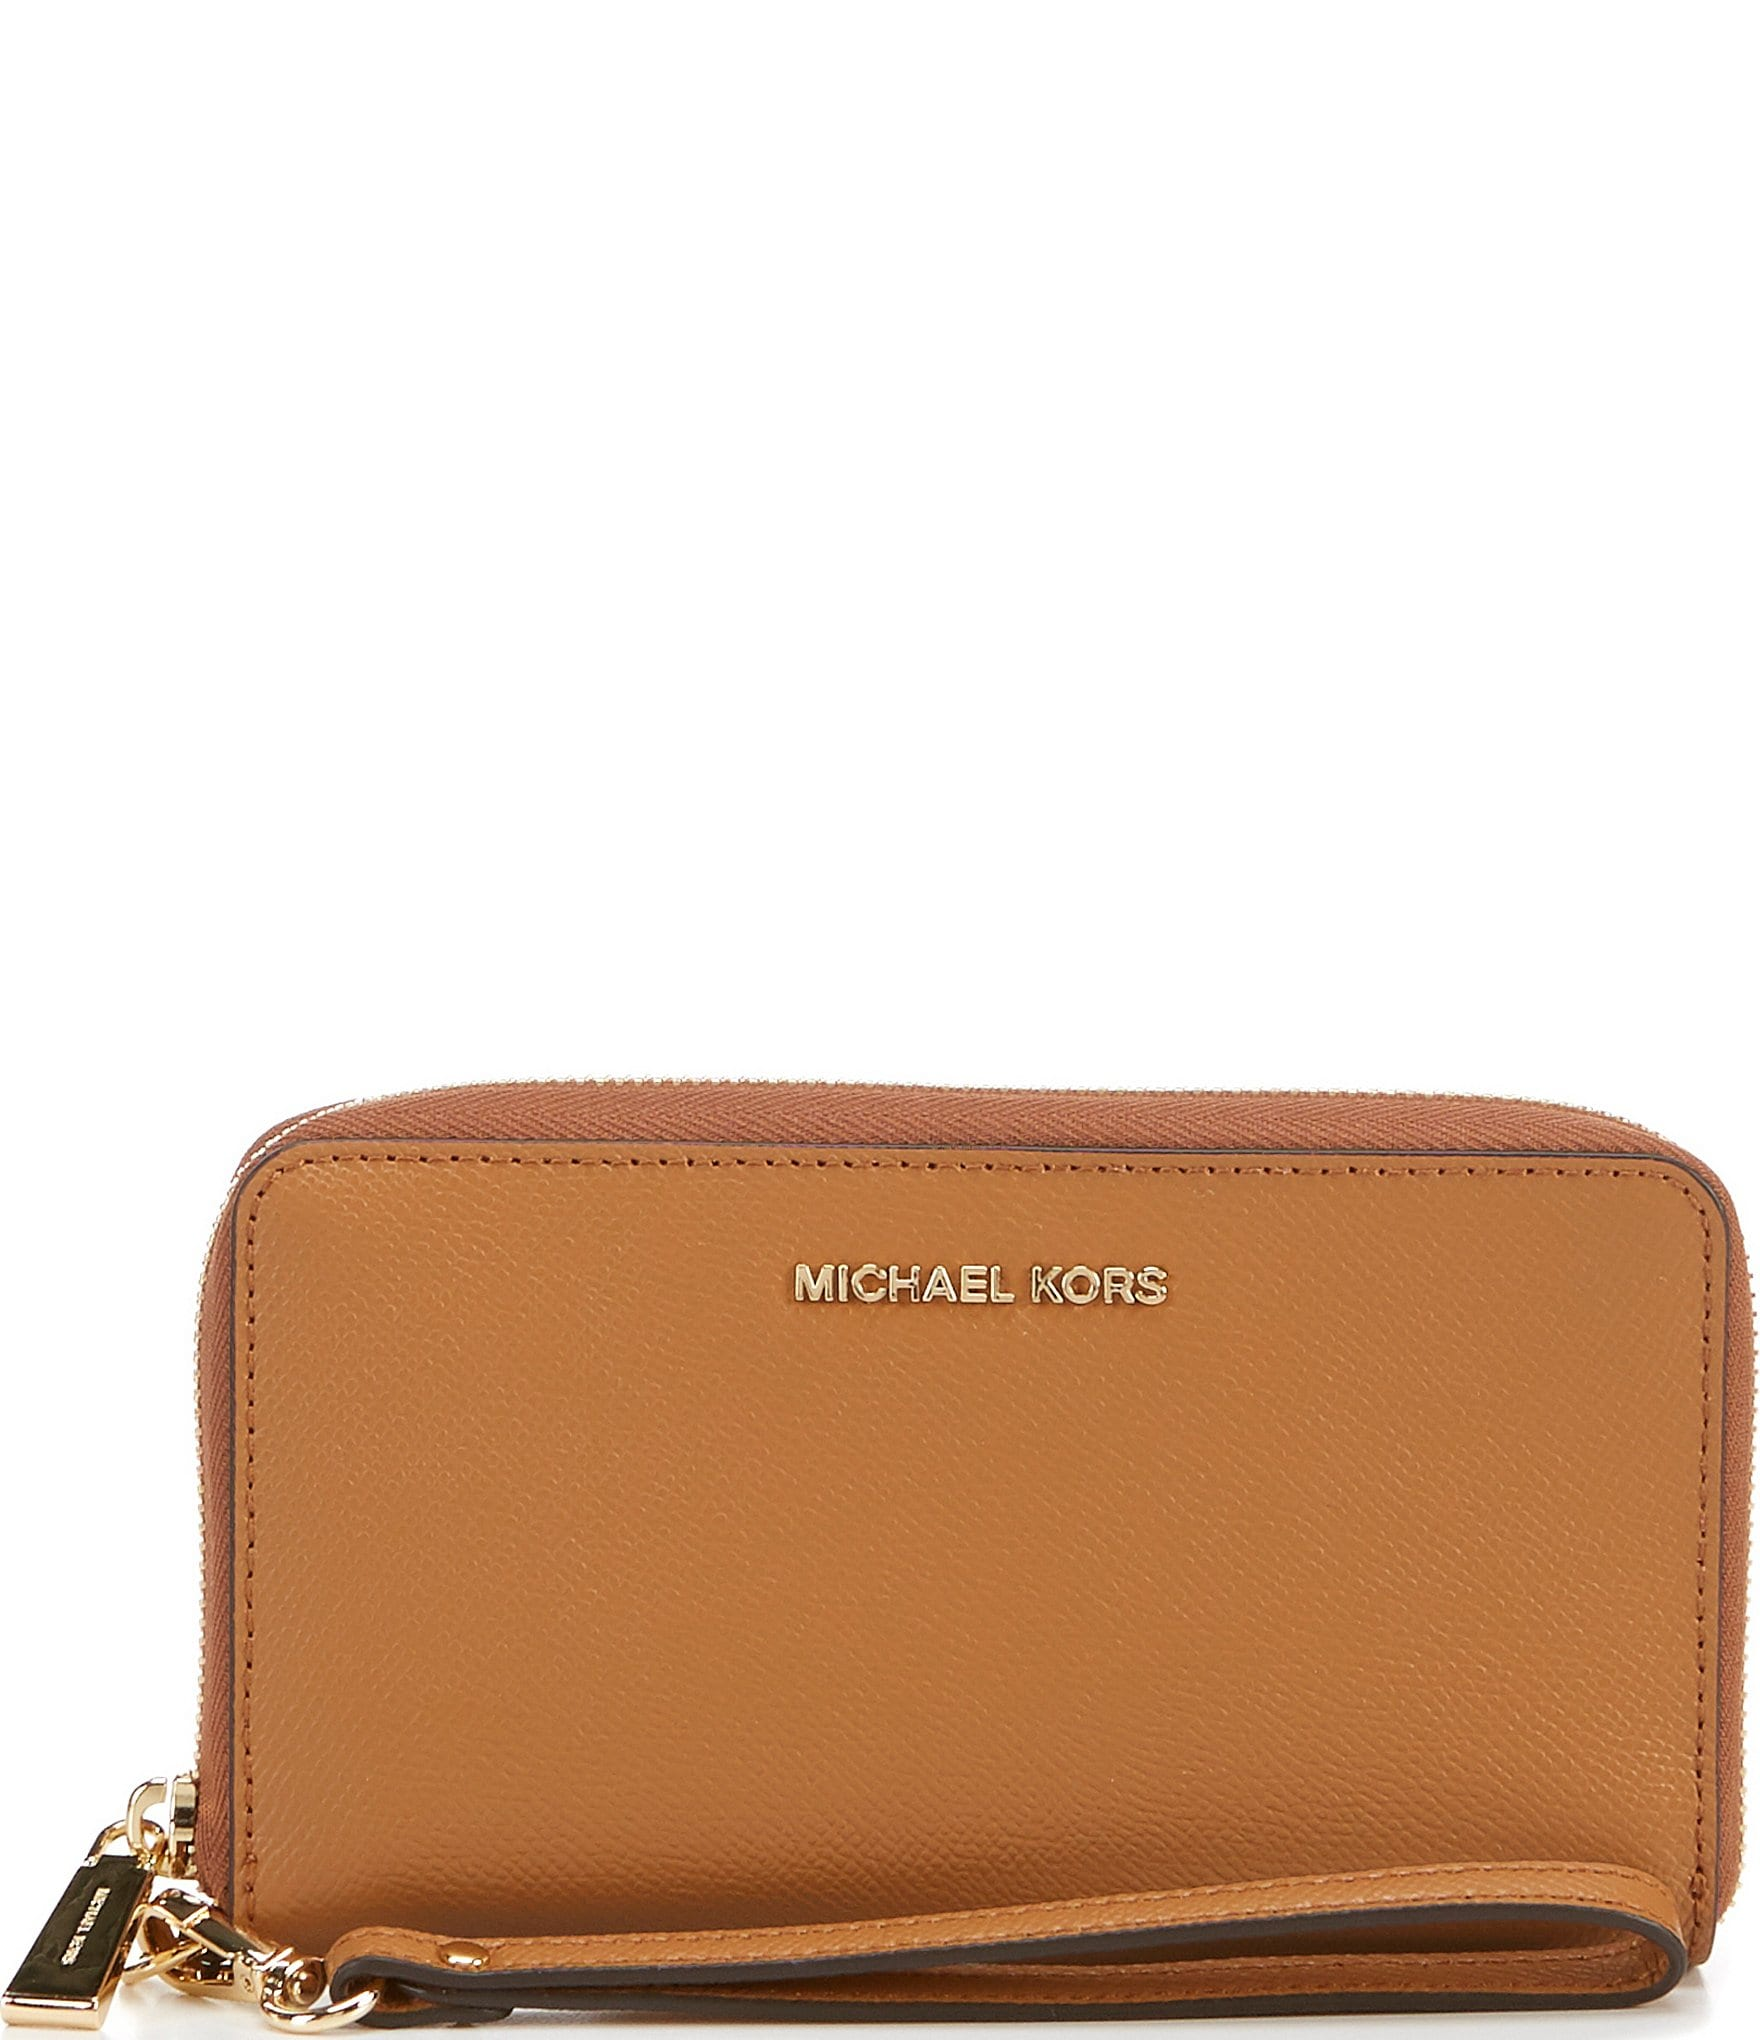 9b1ce487933407 MICHAEL Michael Kors Handbags, Purses & Wallets | Dillard's